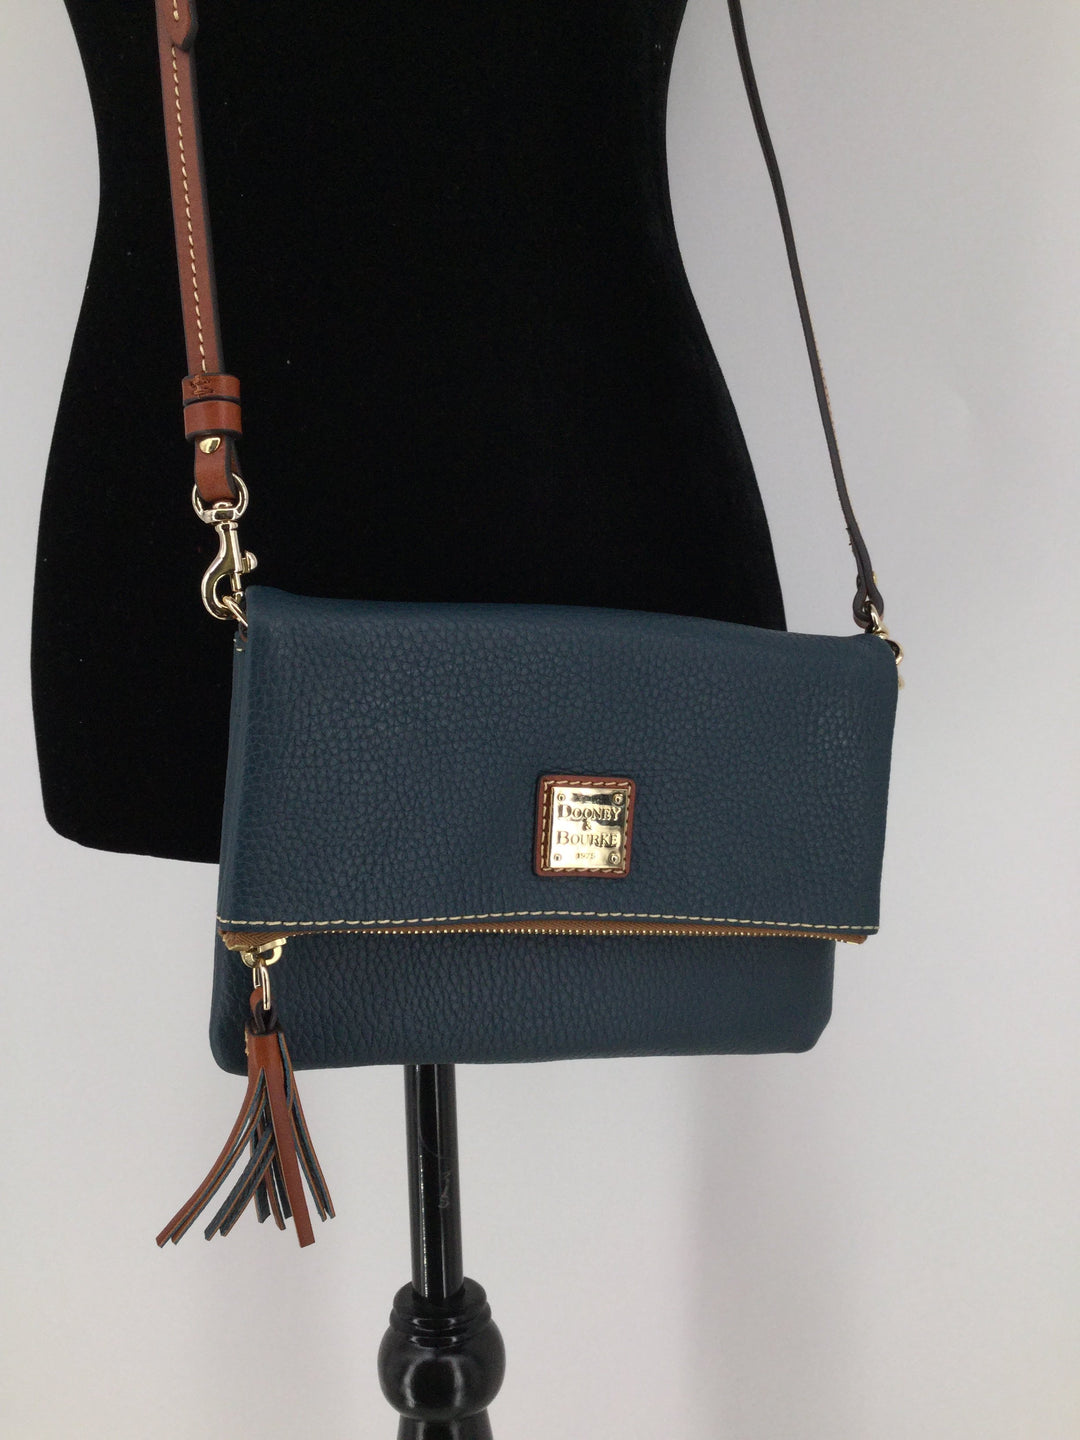 Dooney And Bourke Designer Handbag, Leather, Teal, Size:small - <P>VERY GENTLY USED DOONEY AND BOURKE HANDBAG. IN GREAT CONDITION. CLOSES WITH A ZIPPER AND MAGNETS. TEAL WITH BROWN DETAILS.</P>